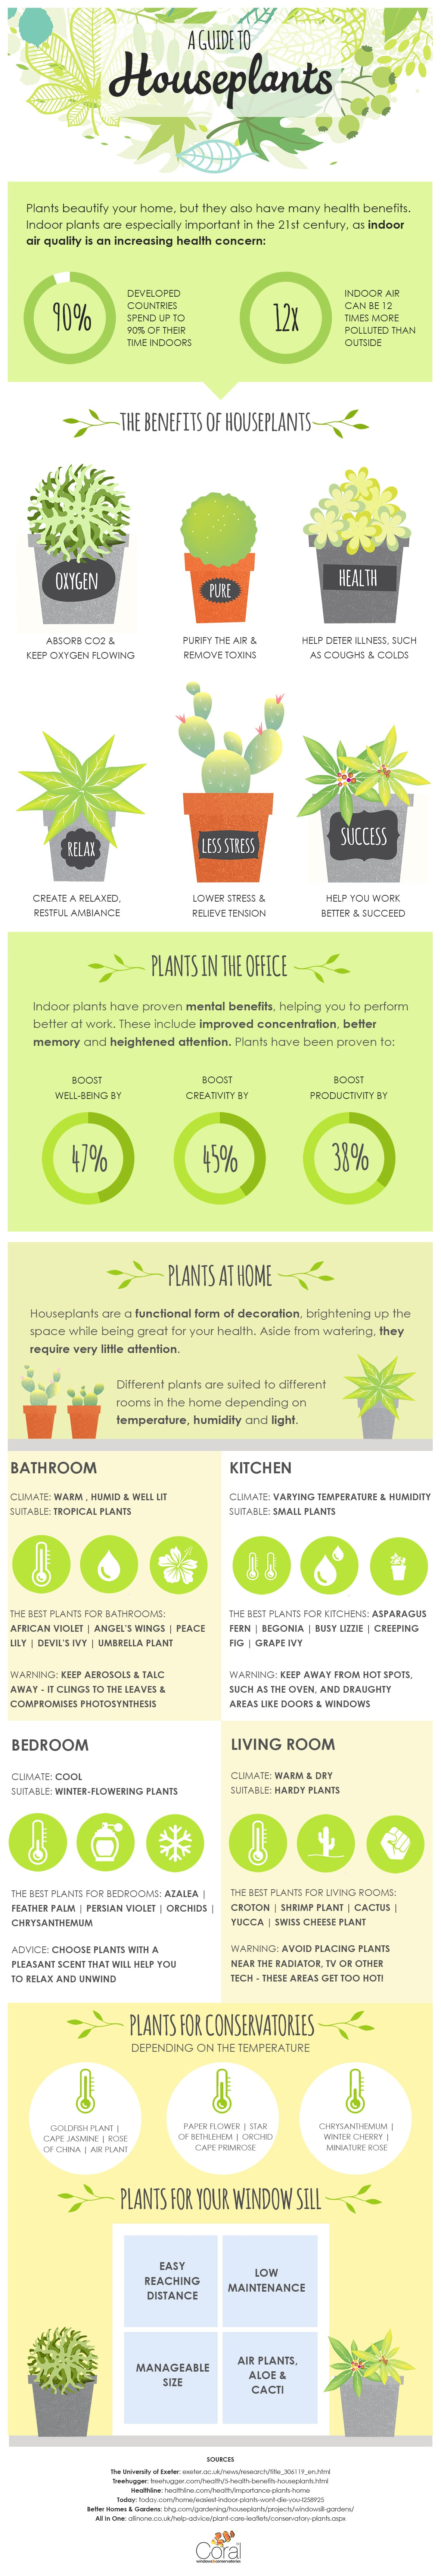 A guide to house plants infographic